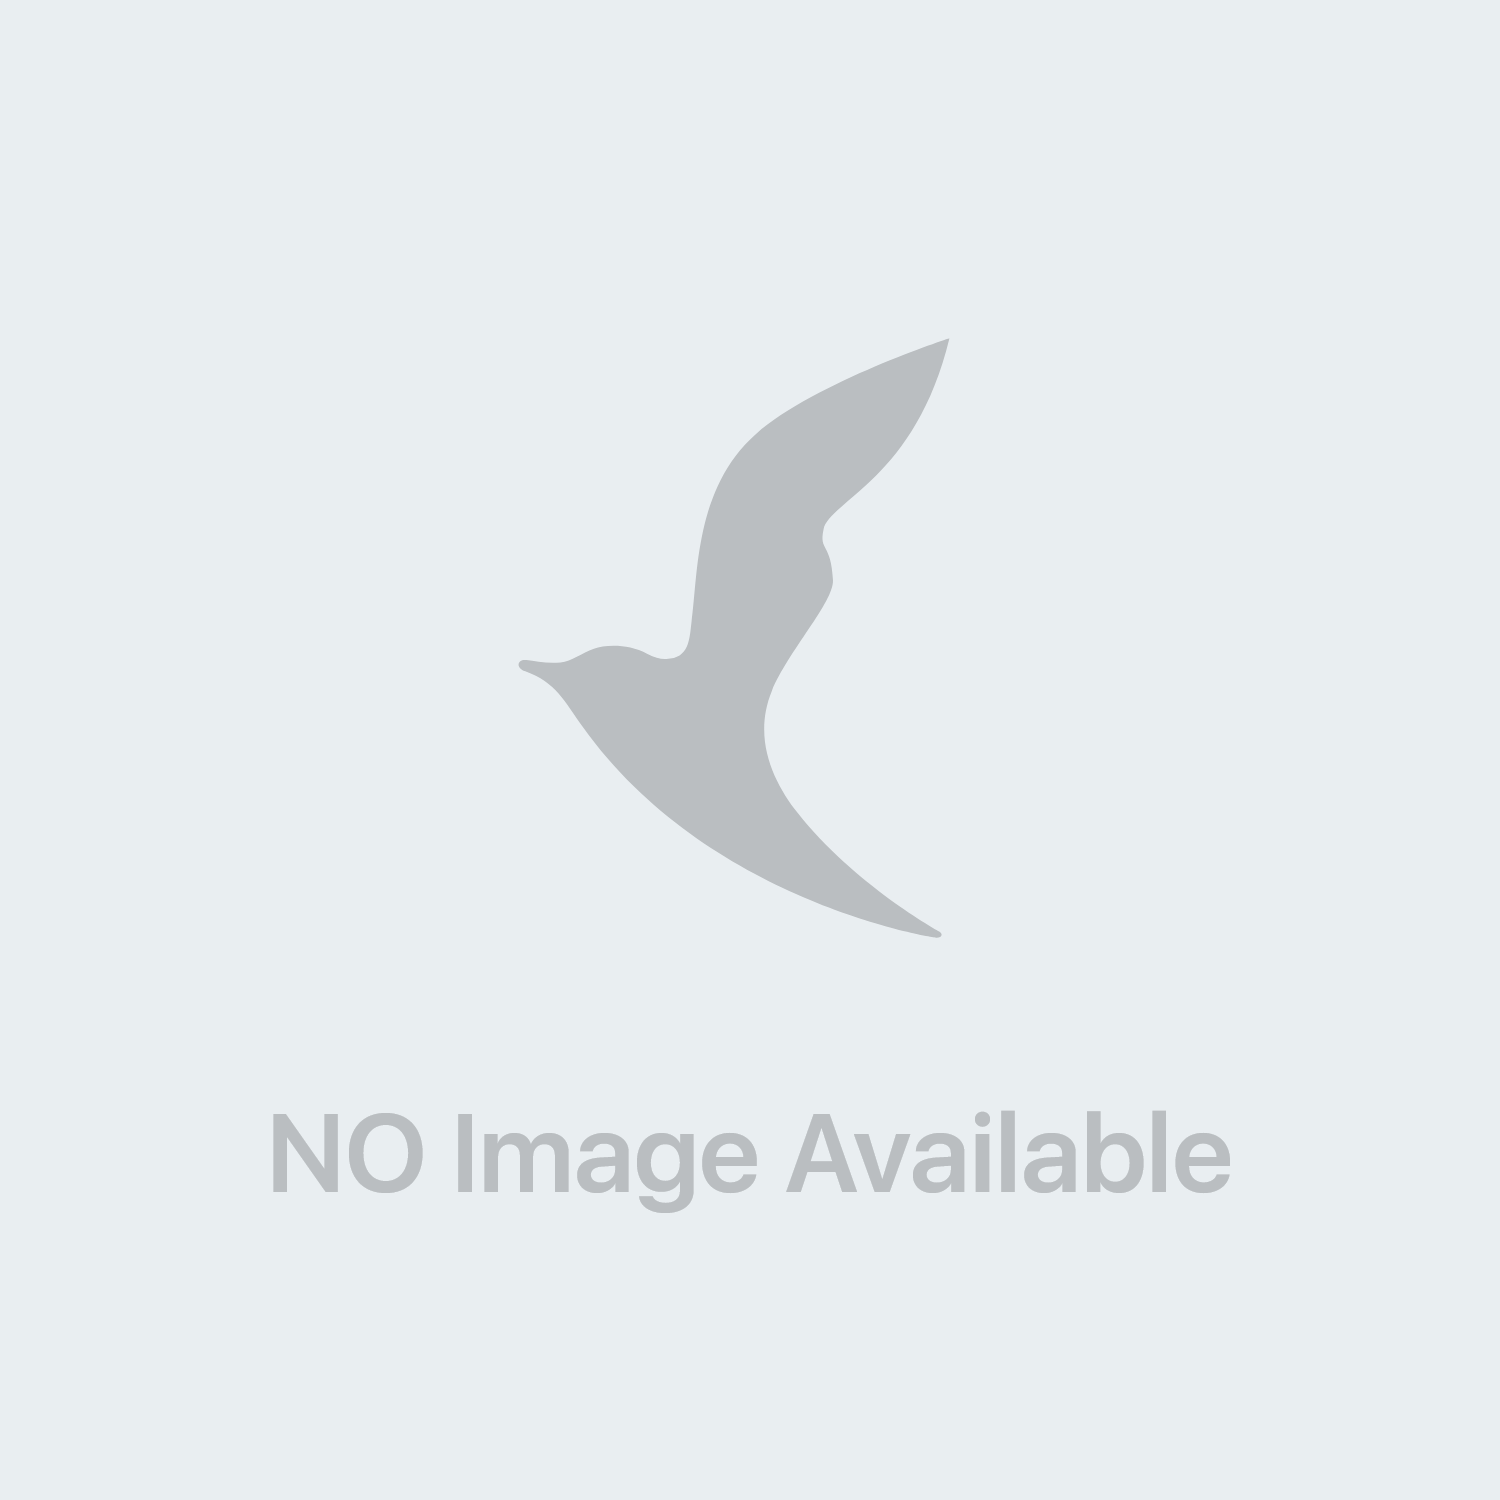 Natural Point Enzylife Integratore Digestivo 120 Capsule